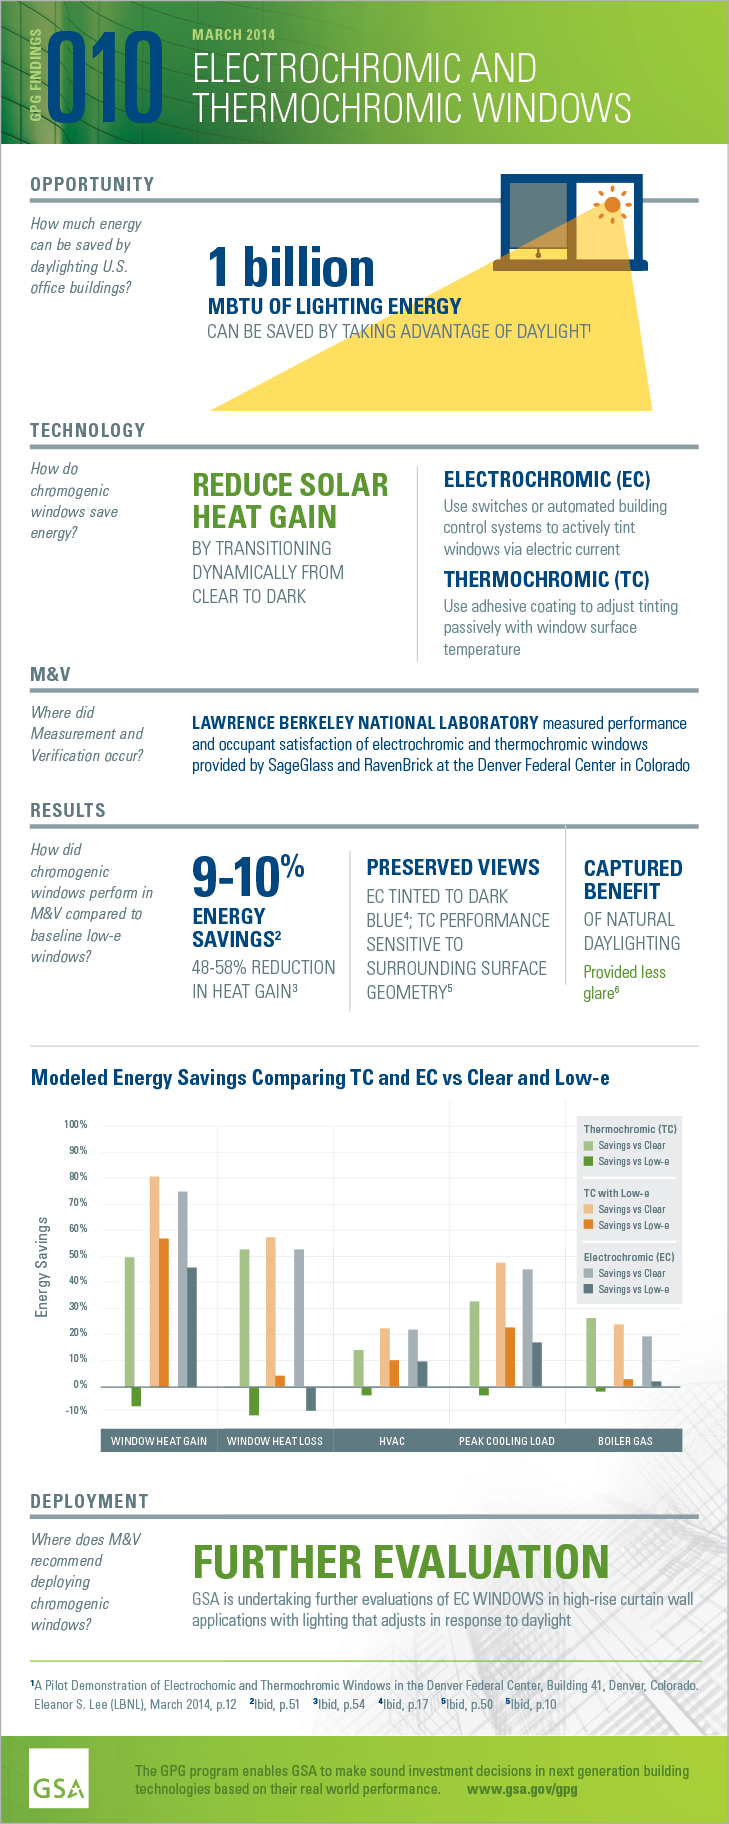 GPG Findings 10, March 2014, Electrochromic and Thermochromic Windows. Opportunity: How much energy can be saved by daylighting U.S. office buildings? 1 billion MBTU of lighting energy can be saved by taking advantage of daylight. Technology: How to chromogenic windows save energy? Reduce solar heat gain by transitioning dynamically from clear to dark. Electrochromic (EC) use switches or automated building control systems to actively tint windows via electric current. Thermochromic (TC) use adhesive coating to adjust tinting passively with window surface temperature. Measurement and Verification: How did chromogenic windows perform in M and V compared to baseline low-e windows? 9-10% energy savings. 48-50% reduction in heat gain. Preserved views. EC tinted to dark blue; TC performance sensitive to surrounding surface geometry. Captured benefit of natural daylighting. Provided less glare. Deployment: Where does M and V recommend deploying chromogenic windows? Further evaluation. GSA is undertaking further evaluation of EC Windows in high-rise curtain wall applications with lighting that adjusts in response to daylight.